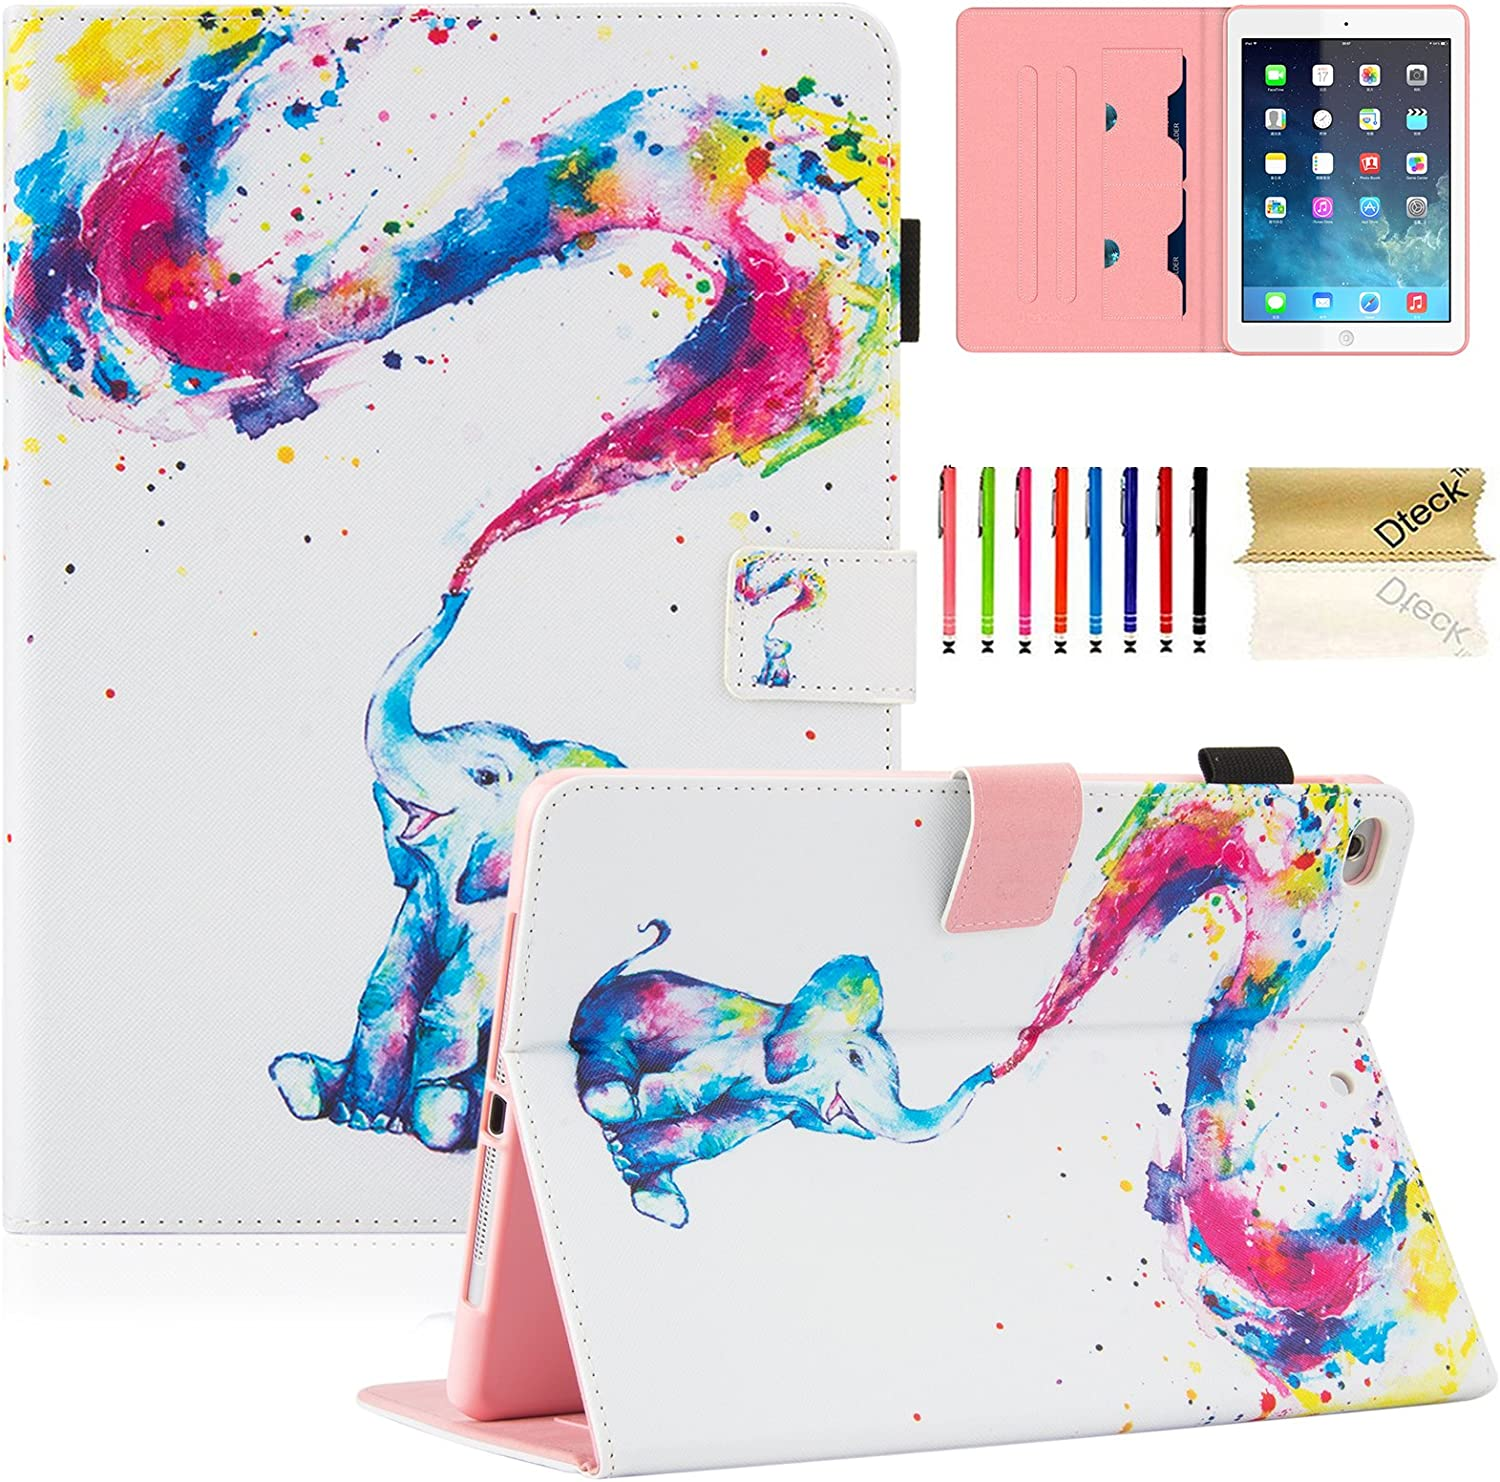 iPad Air Case, iPad Air 2 Case, iPad 6th/5th Gen Case, Dteck iPad Case 2017/2018 PU Leather Folio Stand Case, Auto Wake/Sleep Magnetic Protective Cover for iPad 9.7 2018/2017, Elephant Rainbow